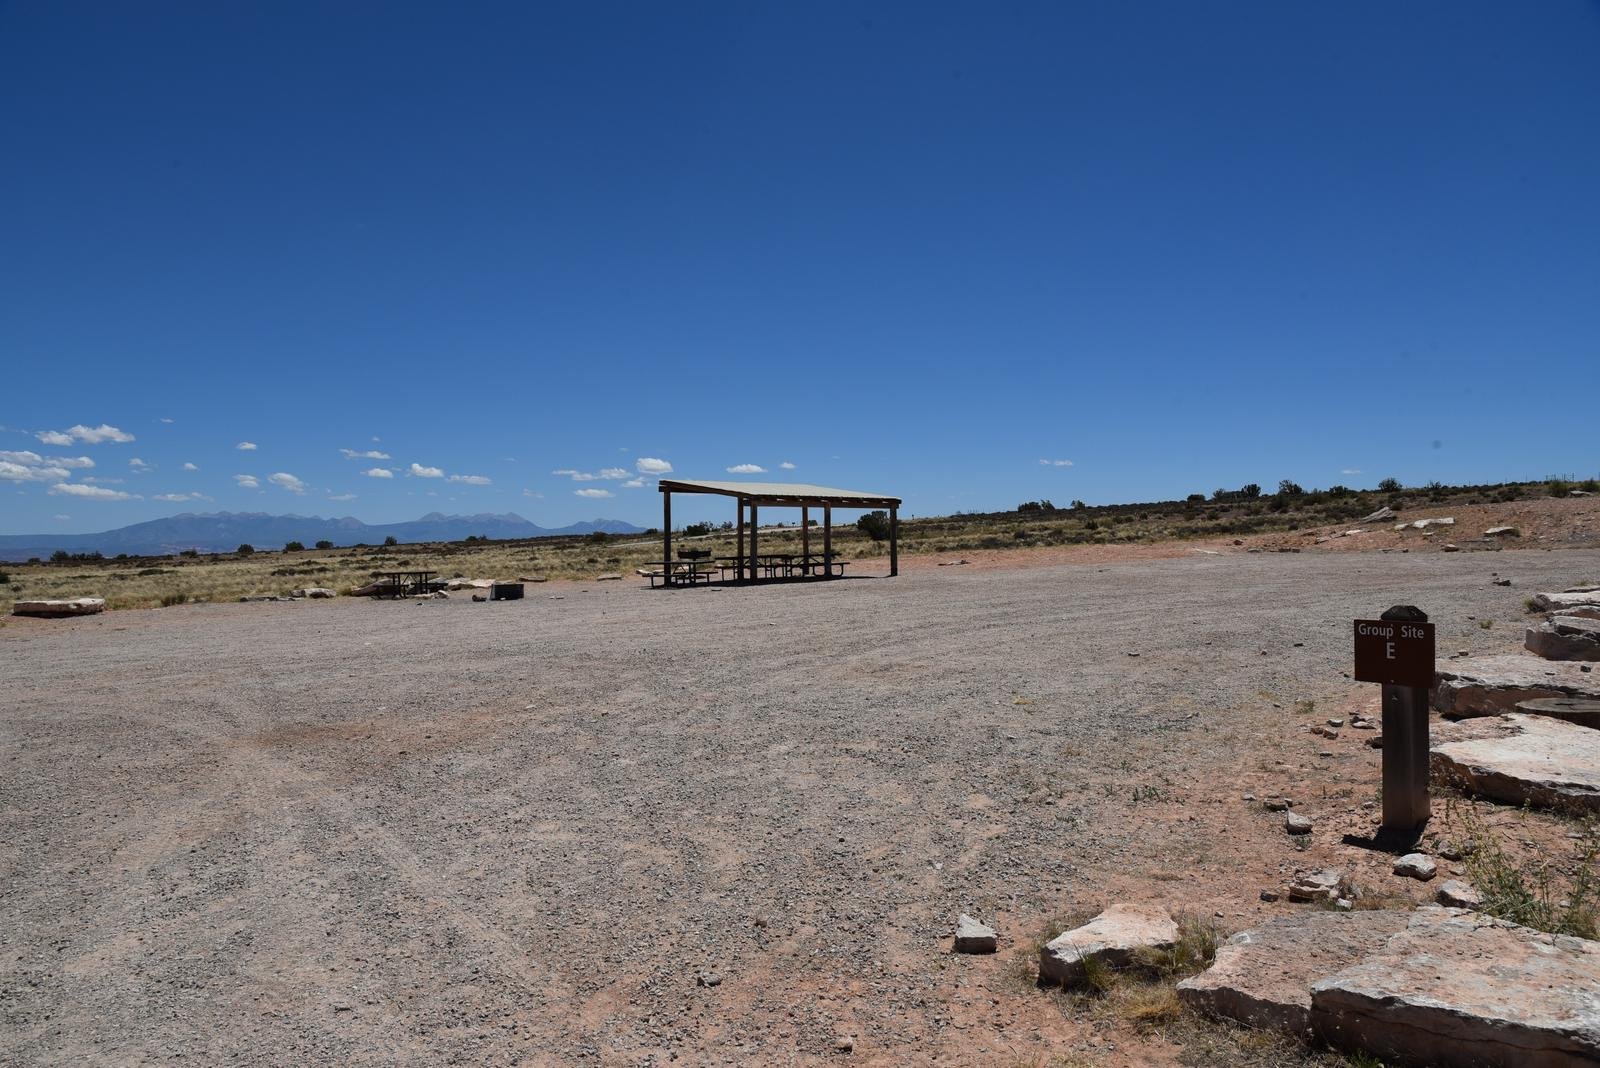 Lone Mesa Group Site C shade shelter, picnic tables, and parking area with the La Sal Mountains in the distance.